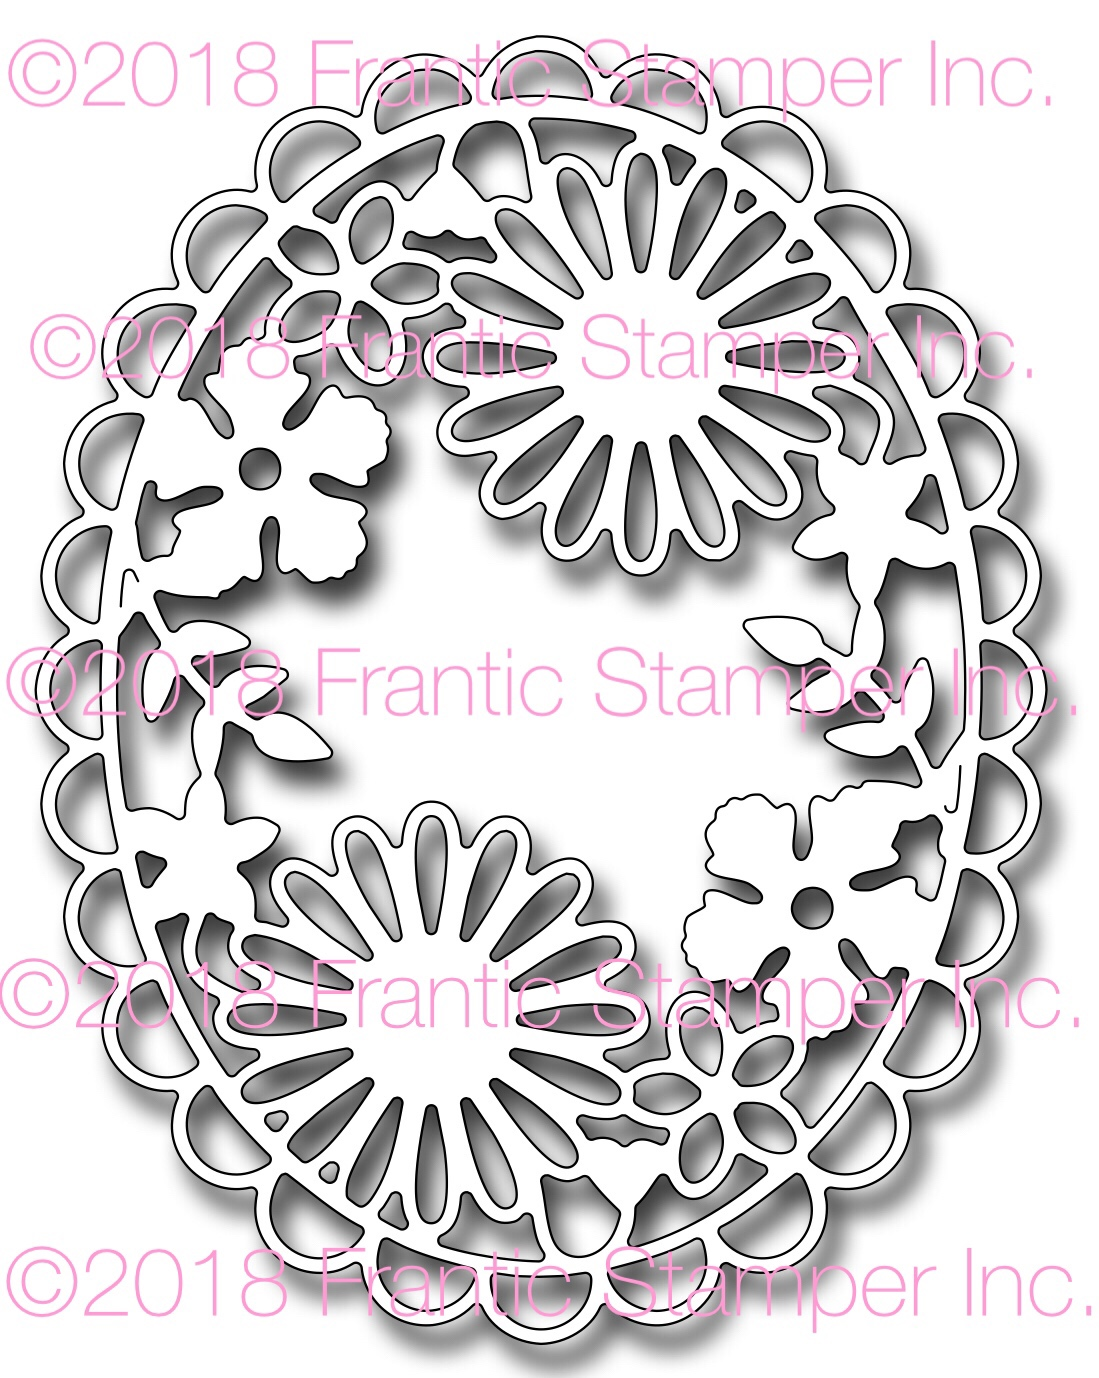 *NEW* - Frantic Stamper - Precision Die - Floral Oval Medallion